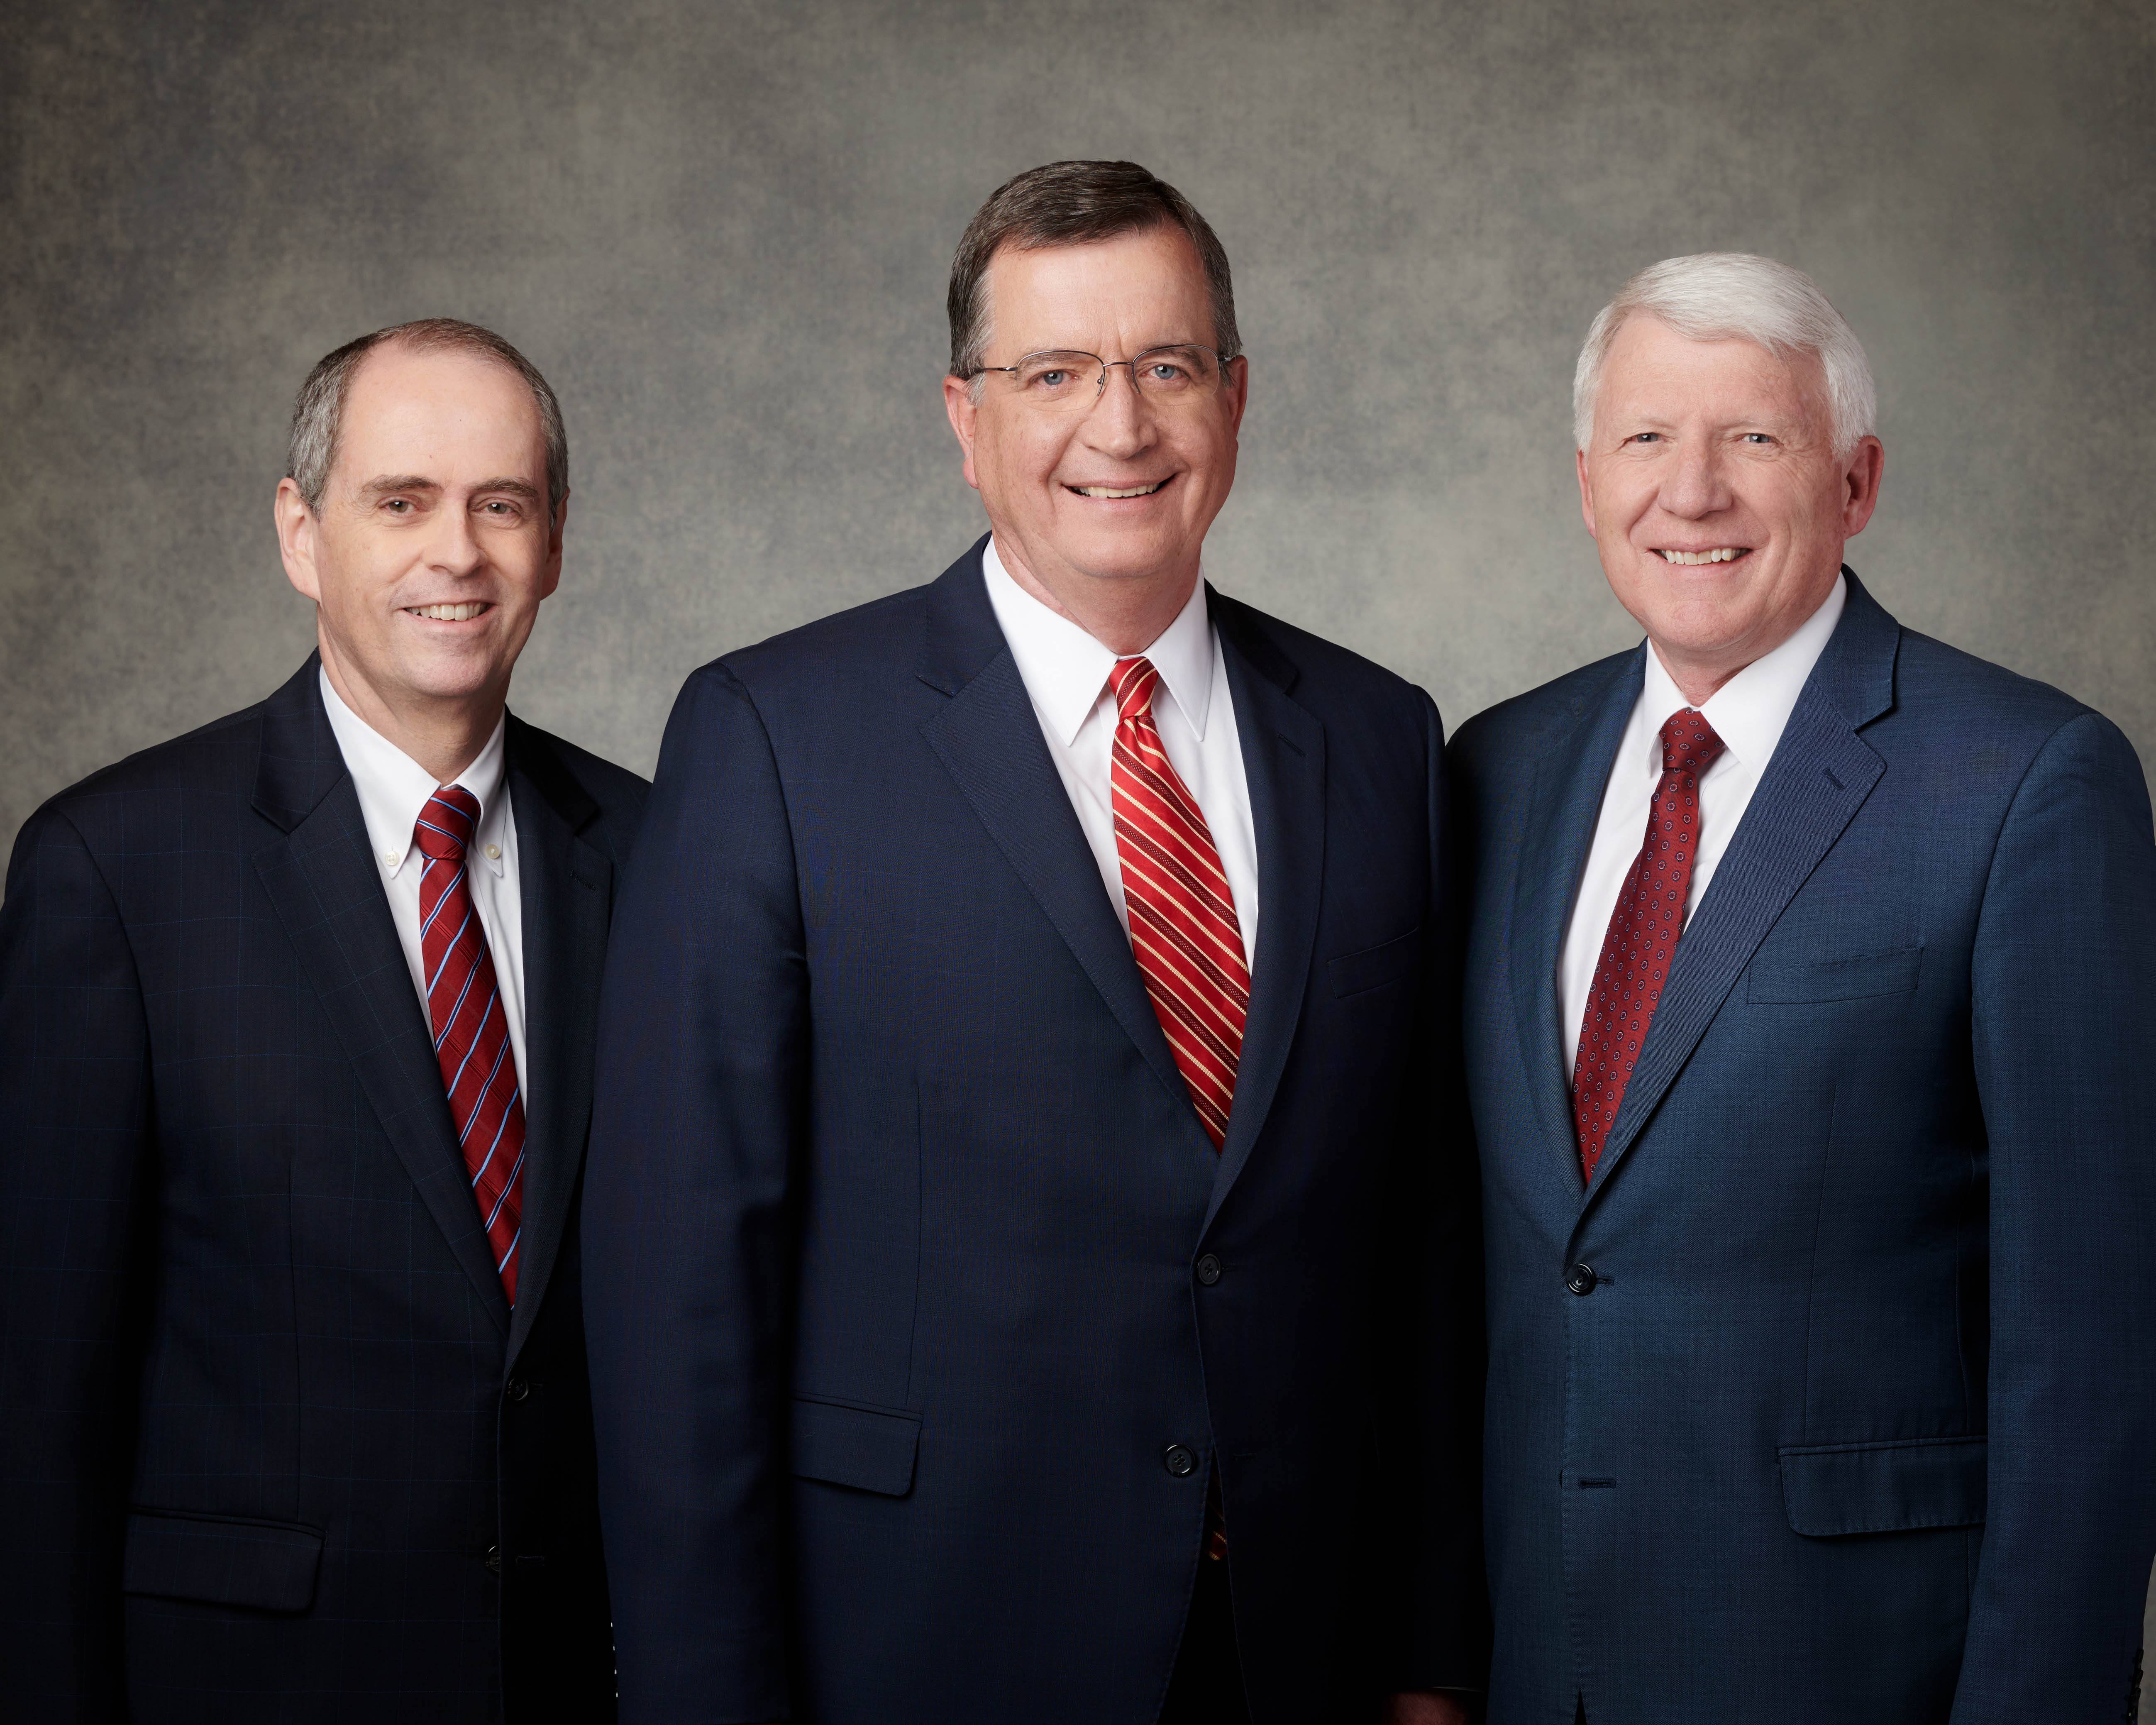 The Sunday School General Presidency of The Church of Jesus Christ of Latter-day Saints, newly sustained April 6, 2019: Brother Milton Camargo, left, first counselor; Brother Mark L. Pace, president; and Jan E. Newman, second counselor.